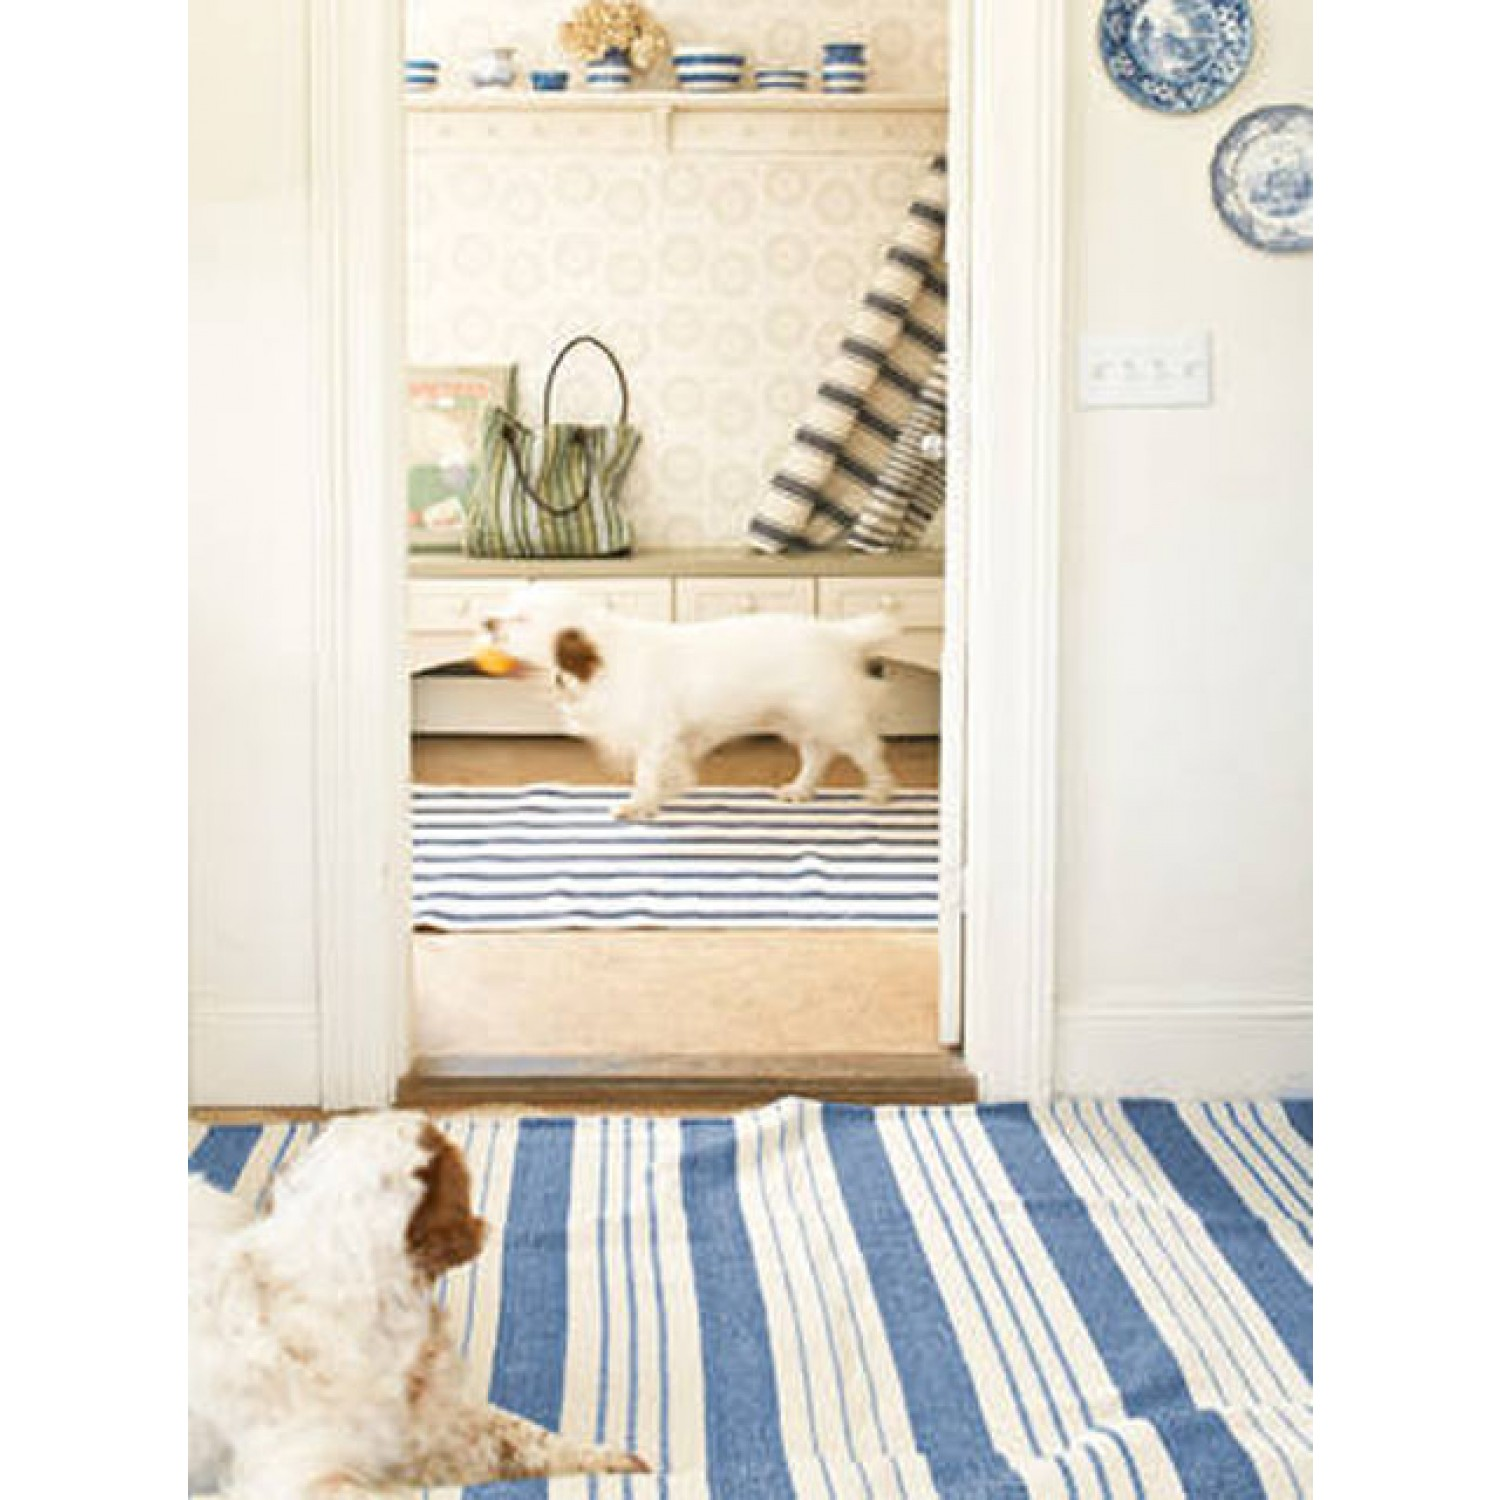 cool blue white stripped Dash And Albert Rugs on wooden floor matched with white wall for living room decor ideas